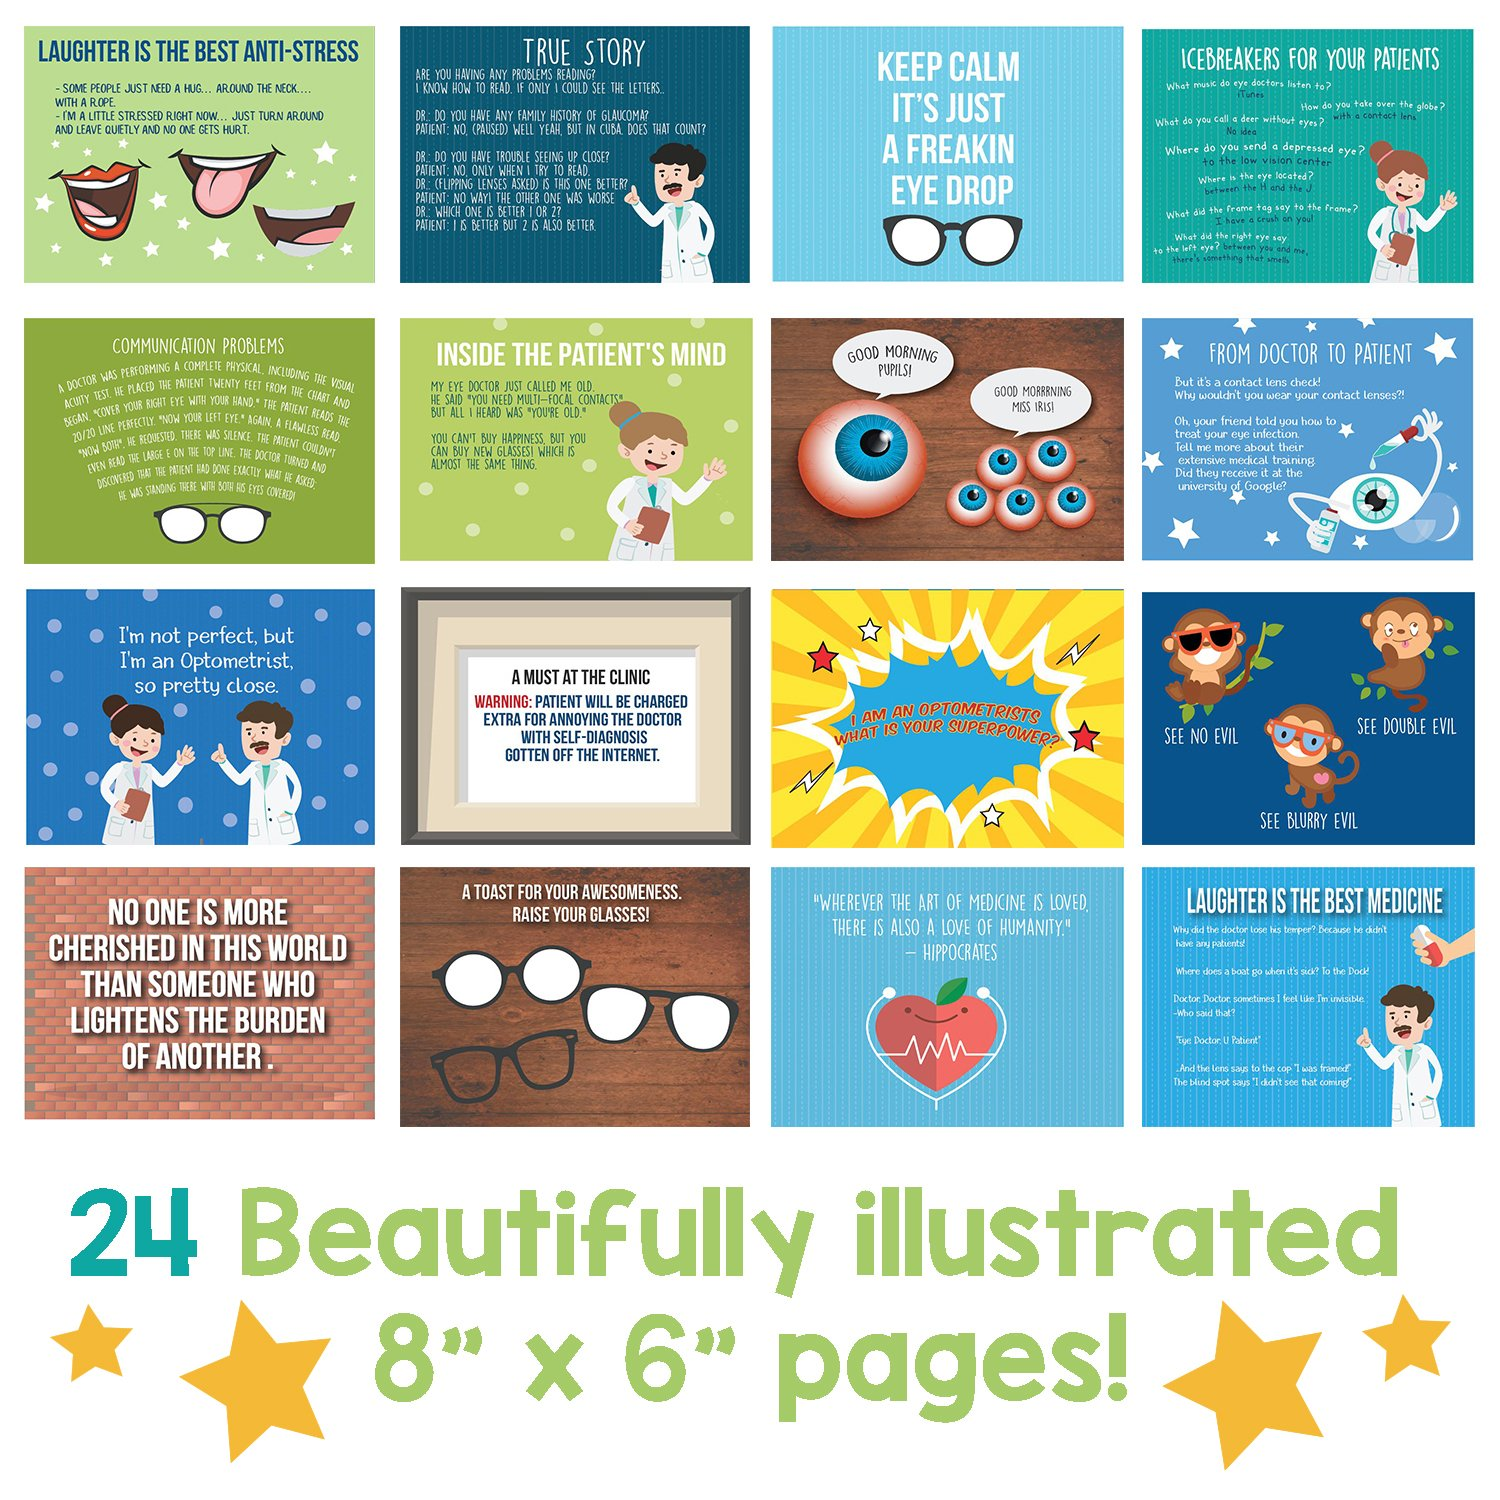 OPTOMETRIST GIFTS - Personalizable Humor Booklet